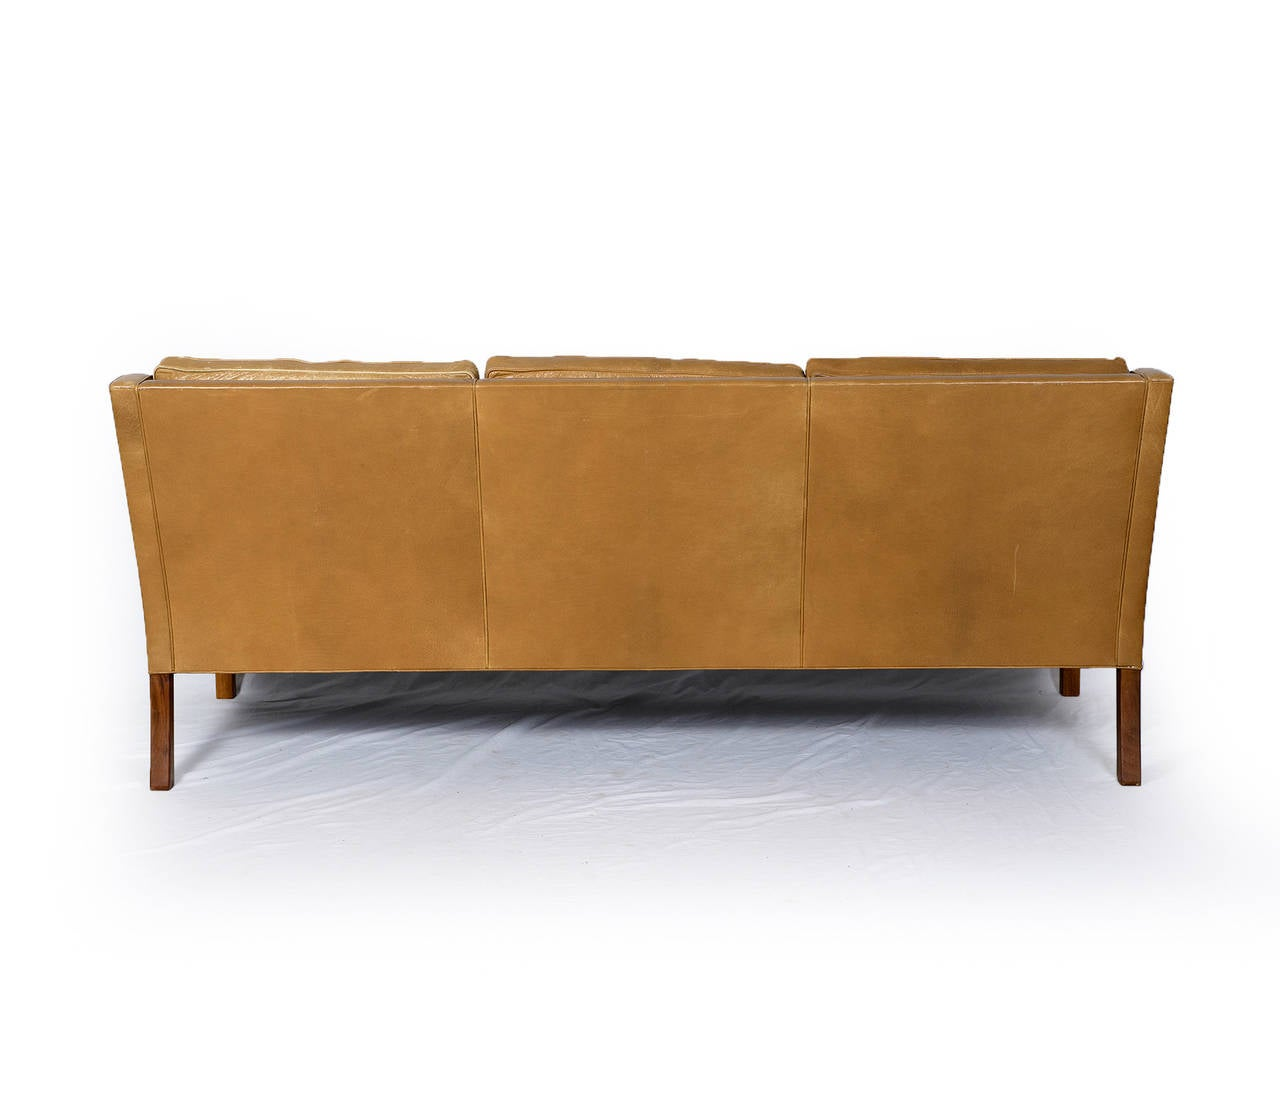 mogensen sofa 2209 with bed inside borge model three seat leather for